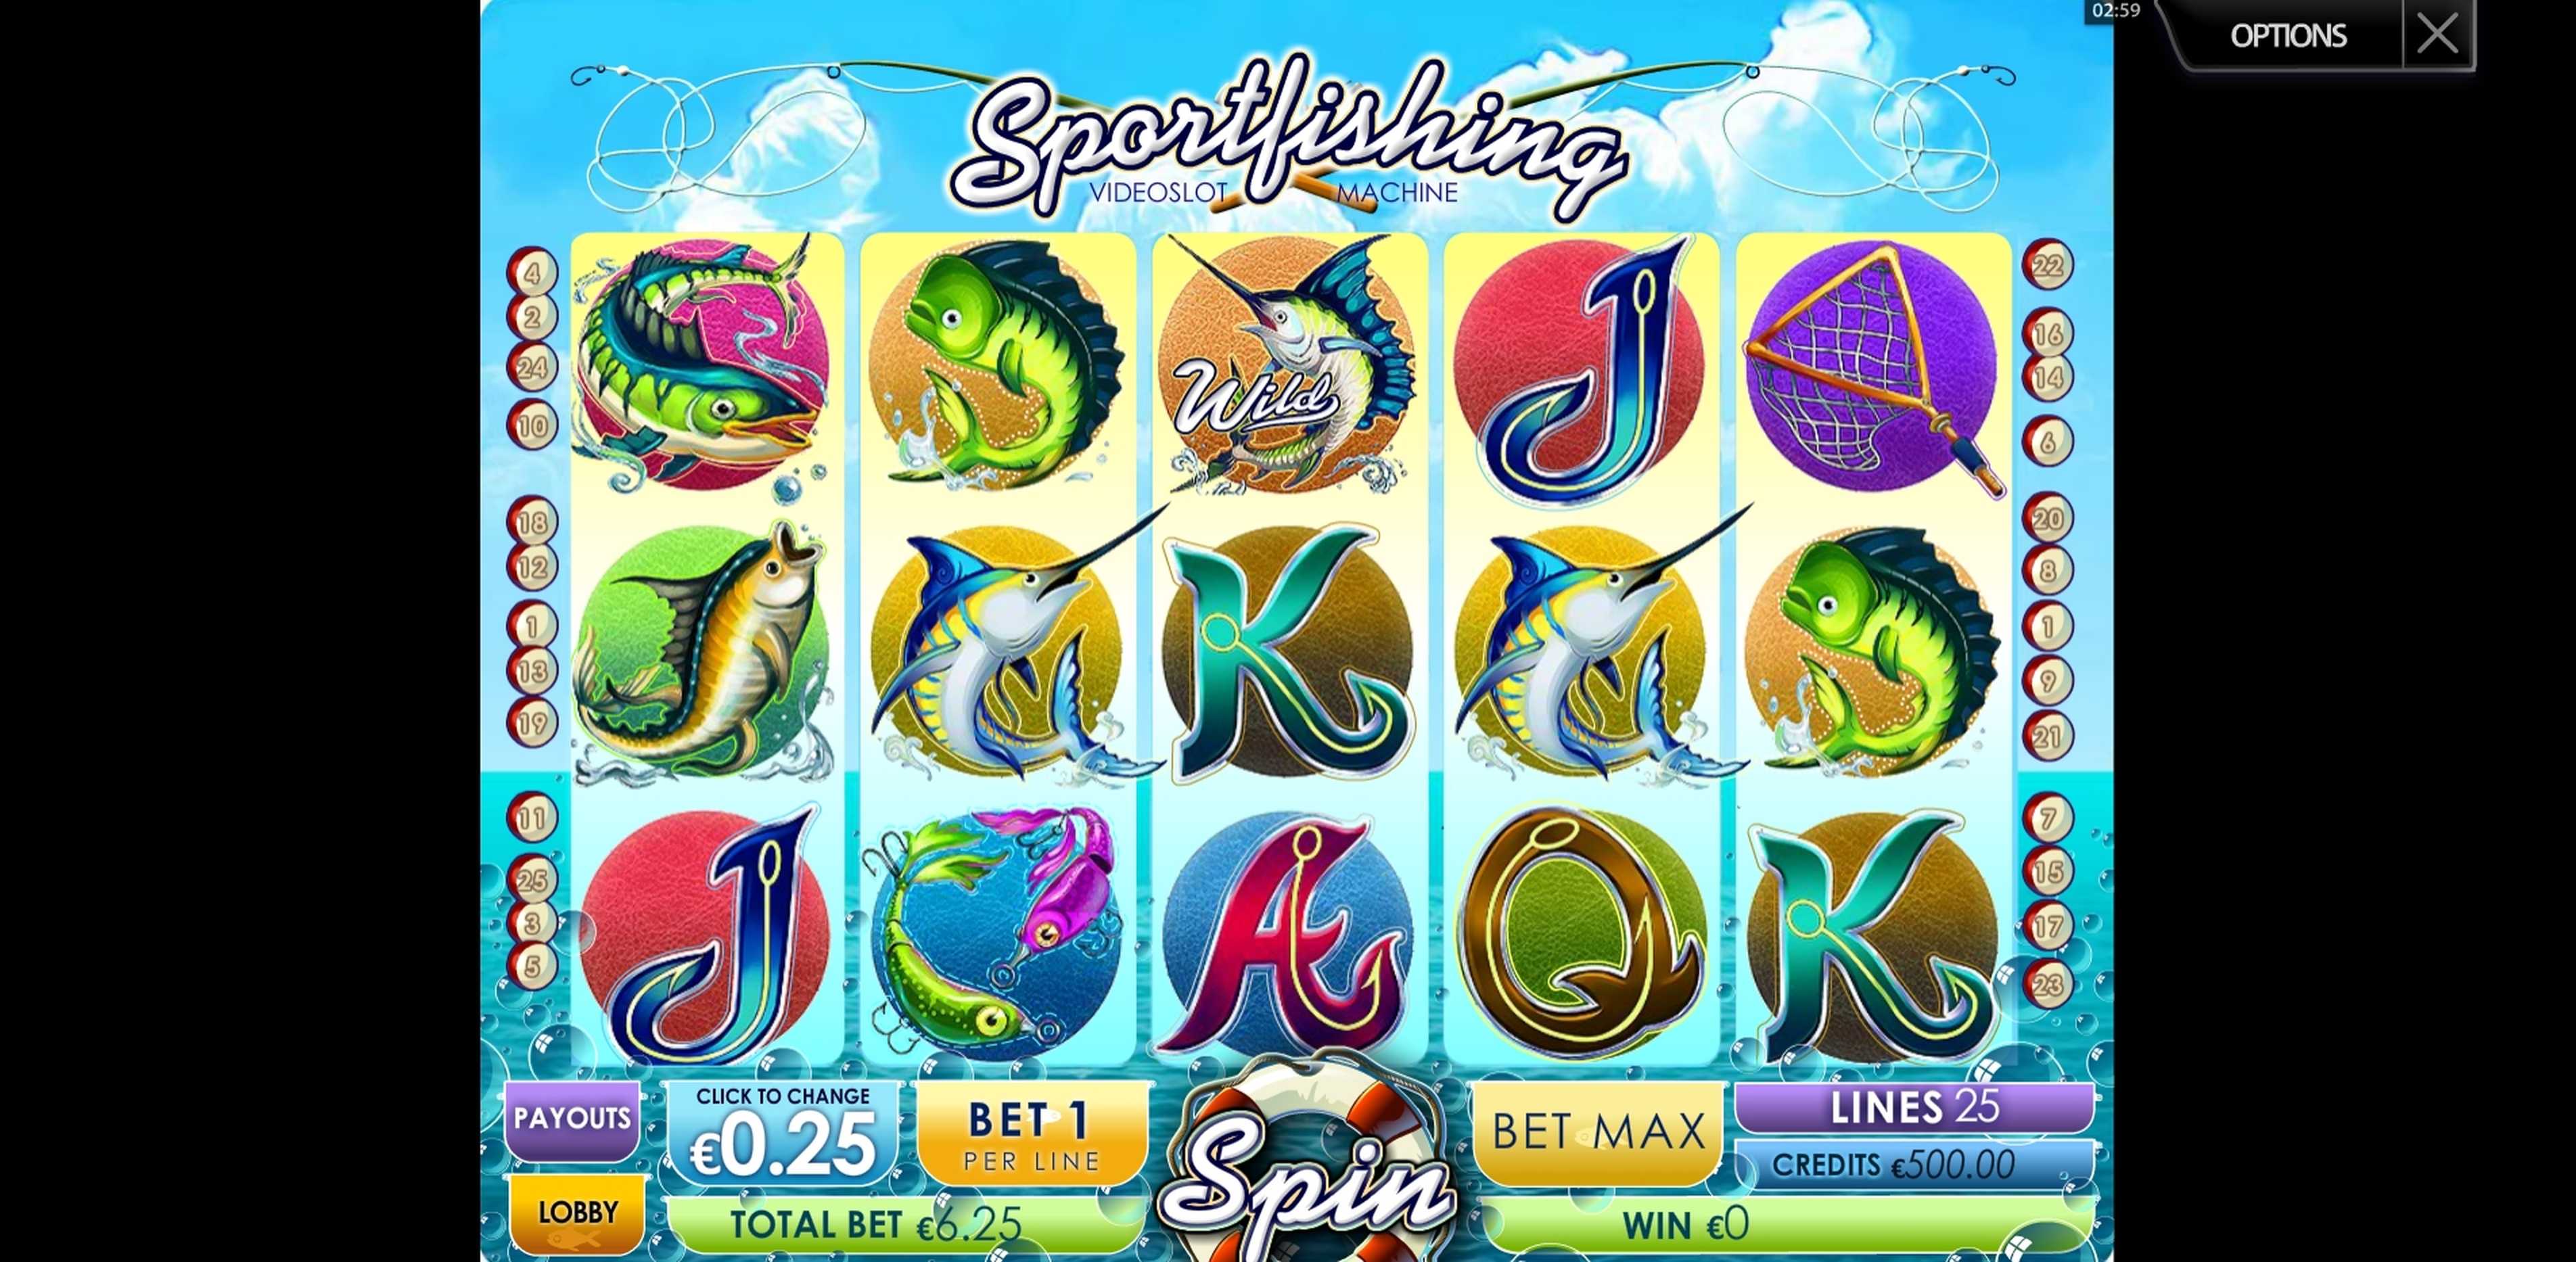 Reels in Sportsfishing Slot Game by Multislot